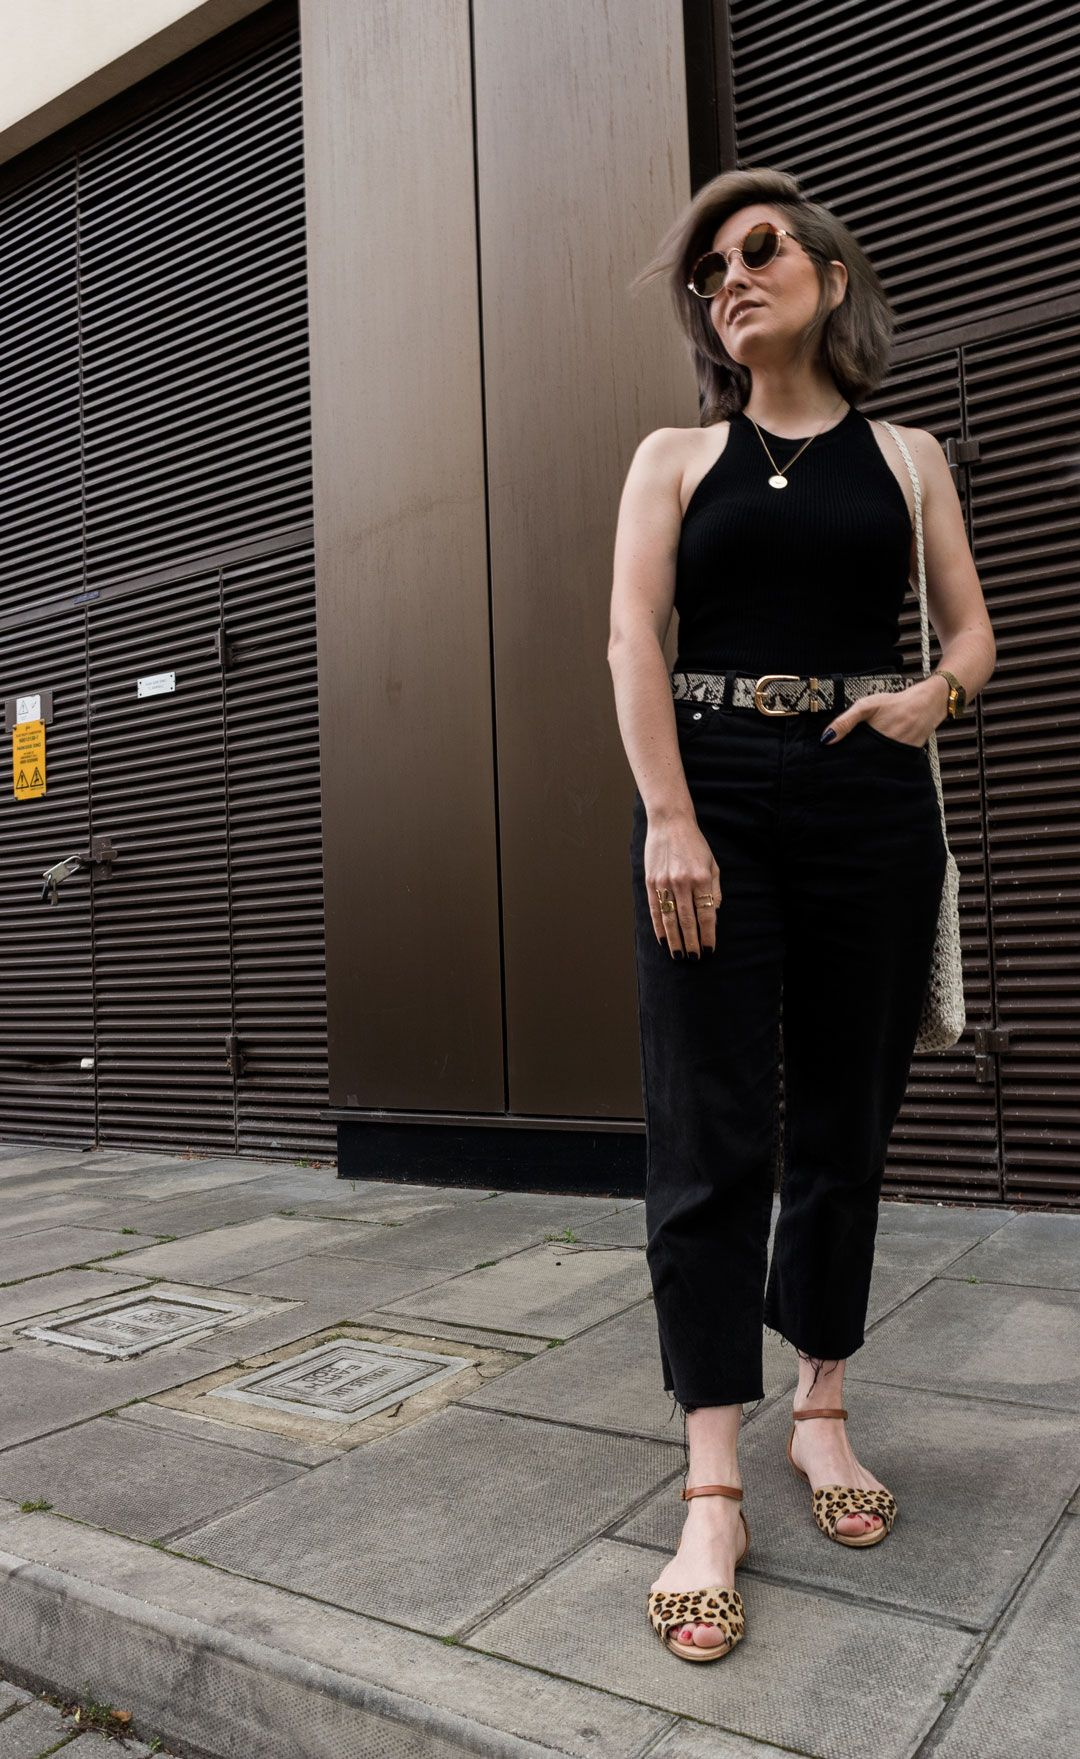 A chic way to animal print | Black on black with a touch of leopard & snake | Leopard sandals | Halter top | Mom jeans | Crochet bag | How to introduce animal print in your wardrobe | All black look | Urban chic outfit | Streetstyle | She talks Glam | Casual night date attire | Summer outfit | Minimal Streetstyle | UK Blogger | Positive Fashion | Cambridge Fashion | Spanish Blogger